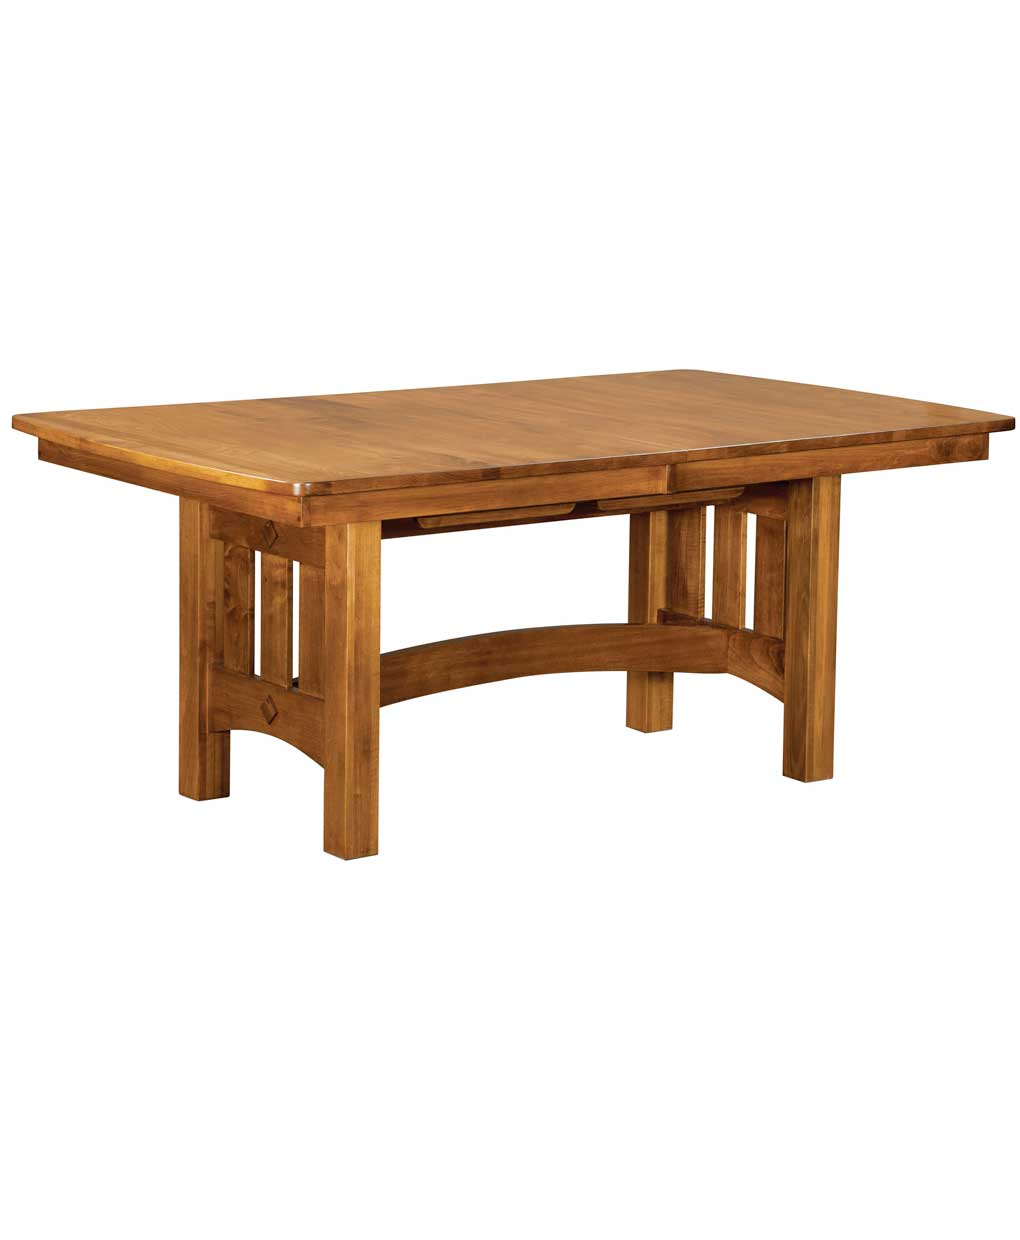 Vancouver Trestle Dining Table Amish Direct Furniture : VancouverTrestle from amishdirectfurniture.com size 1020 x 1240 jpeg 29kB